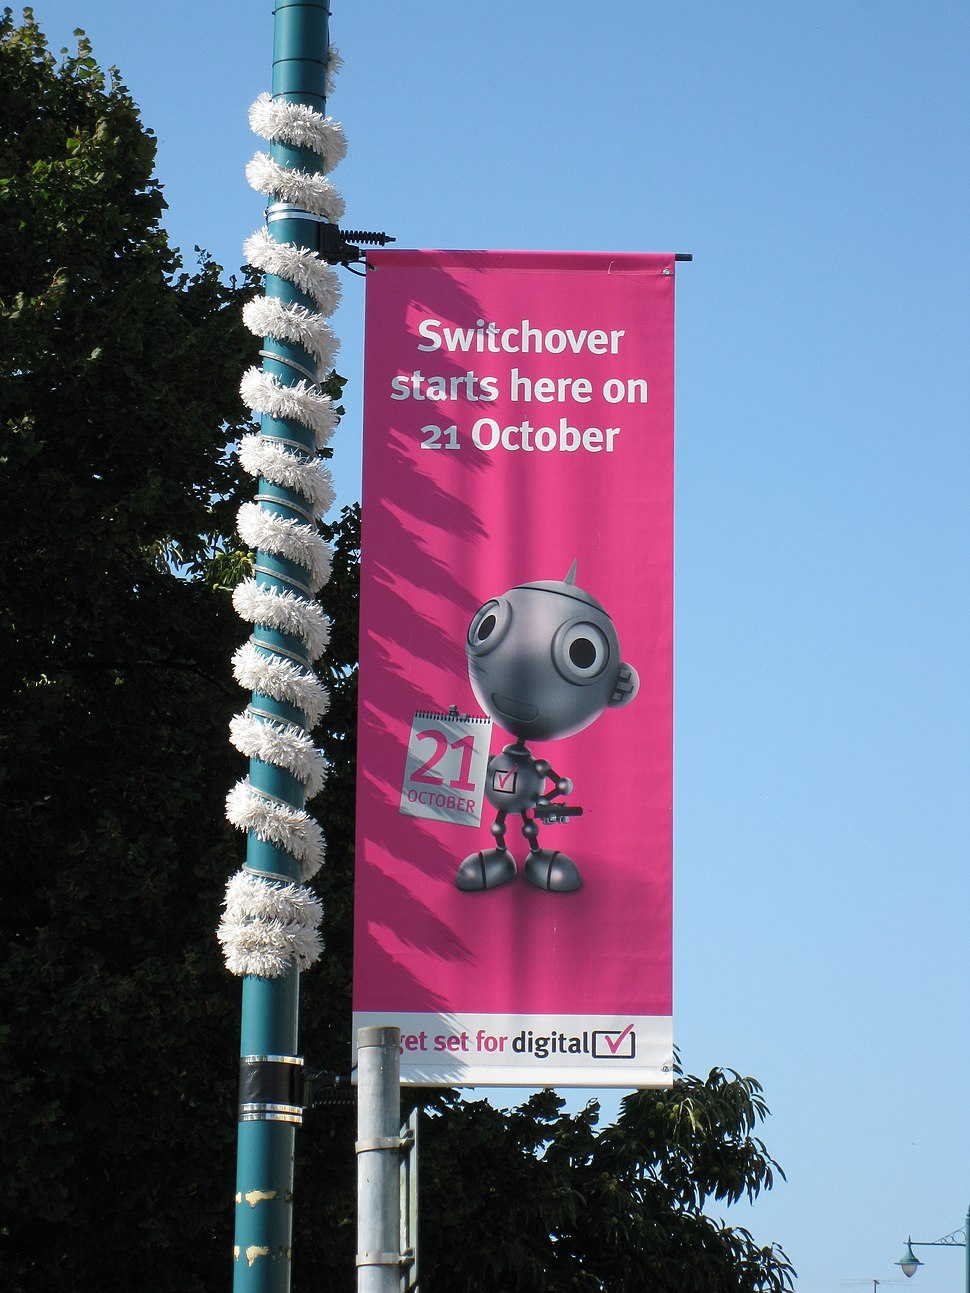 Digitalswitchover